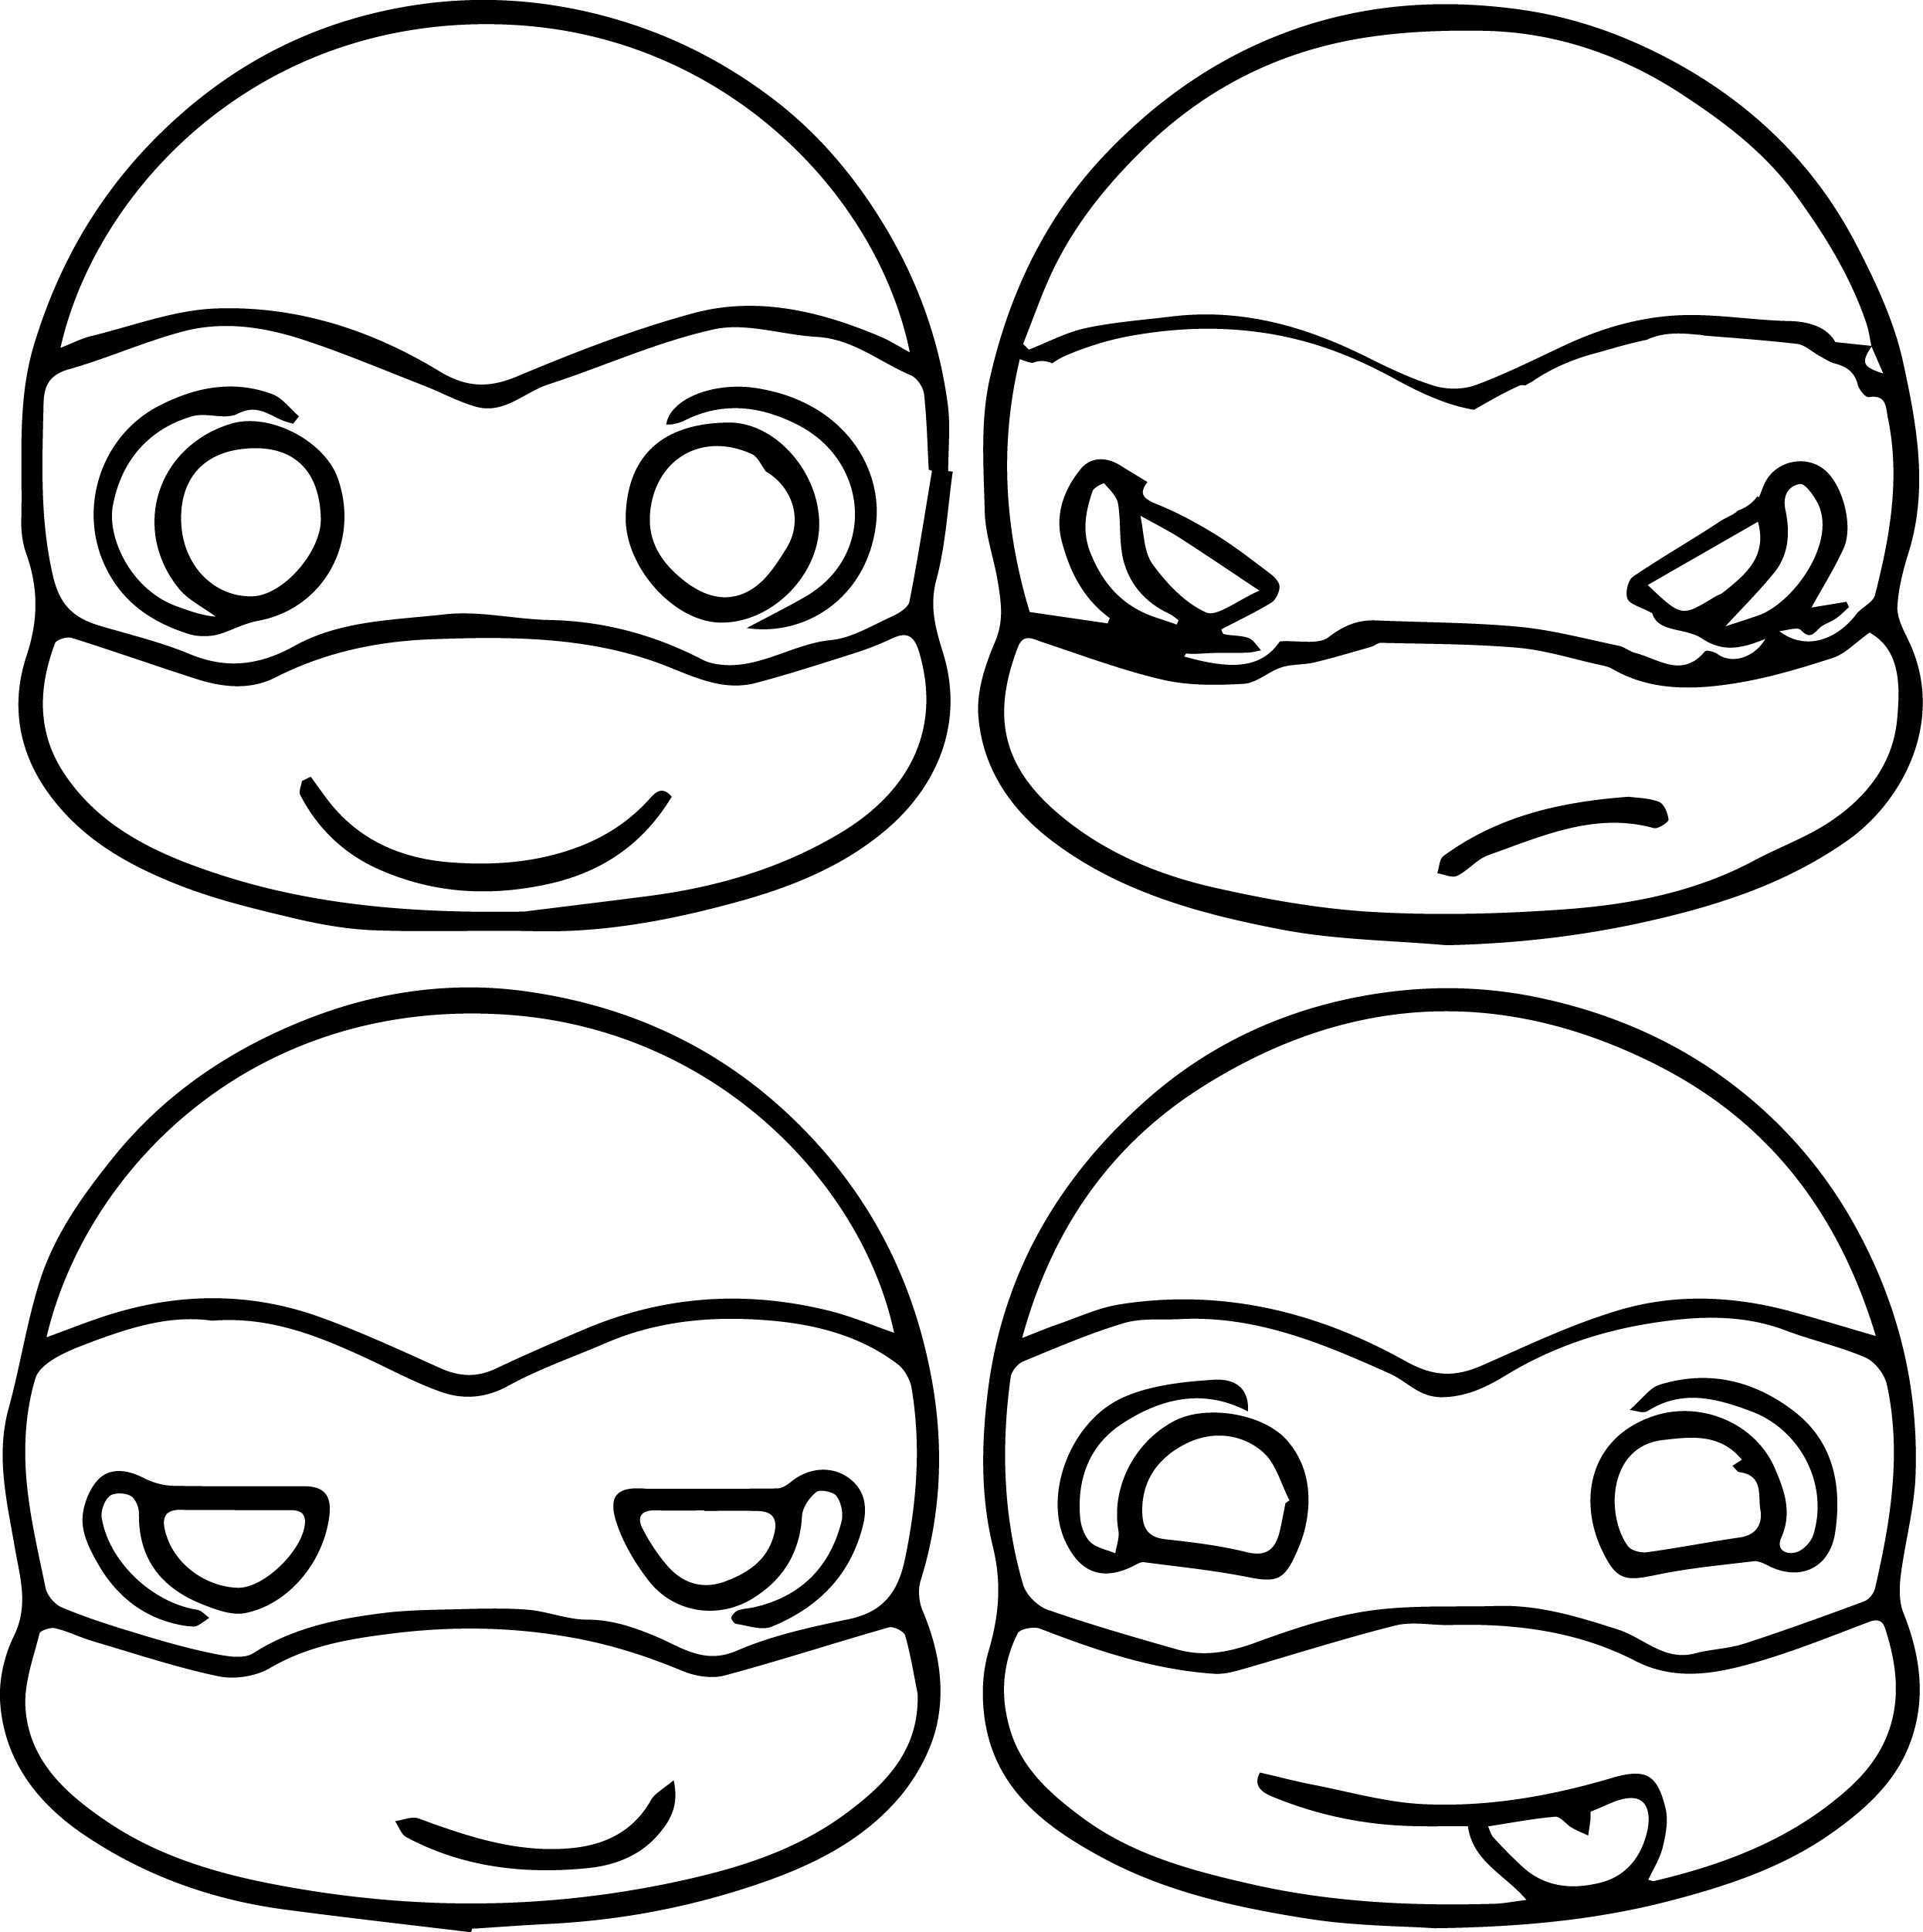 ninja turtle coloring pages to print teenage mutant ninja turtles printable coloring pages coloring to ninja turtle print pages